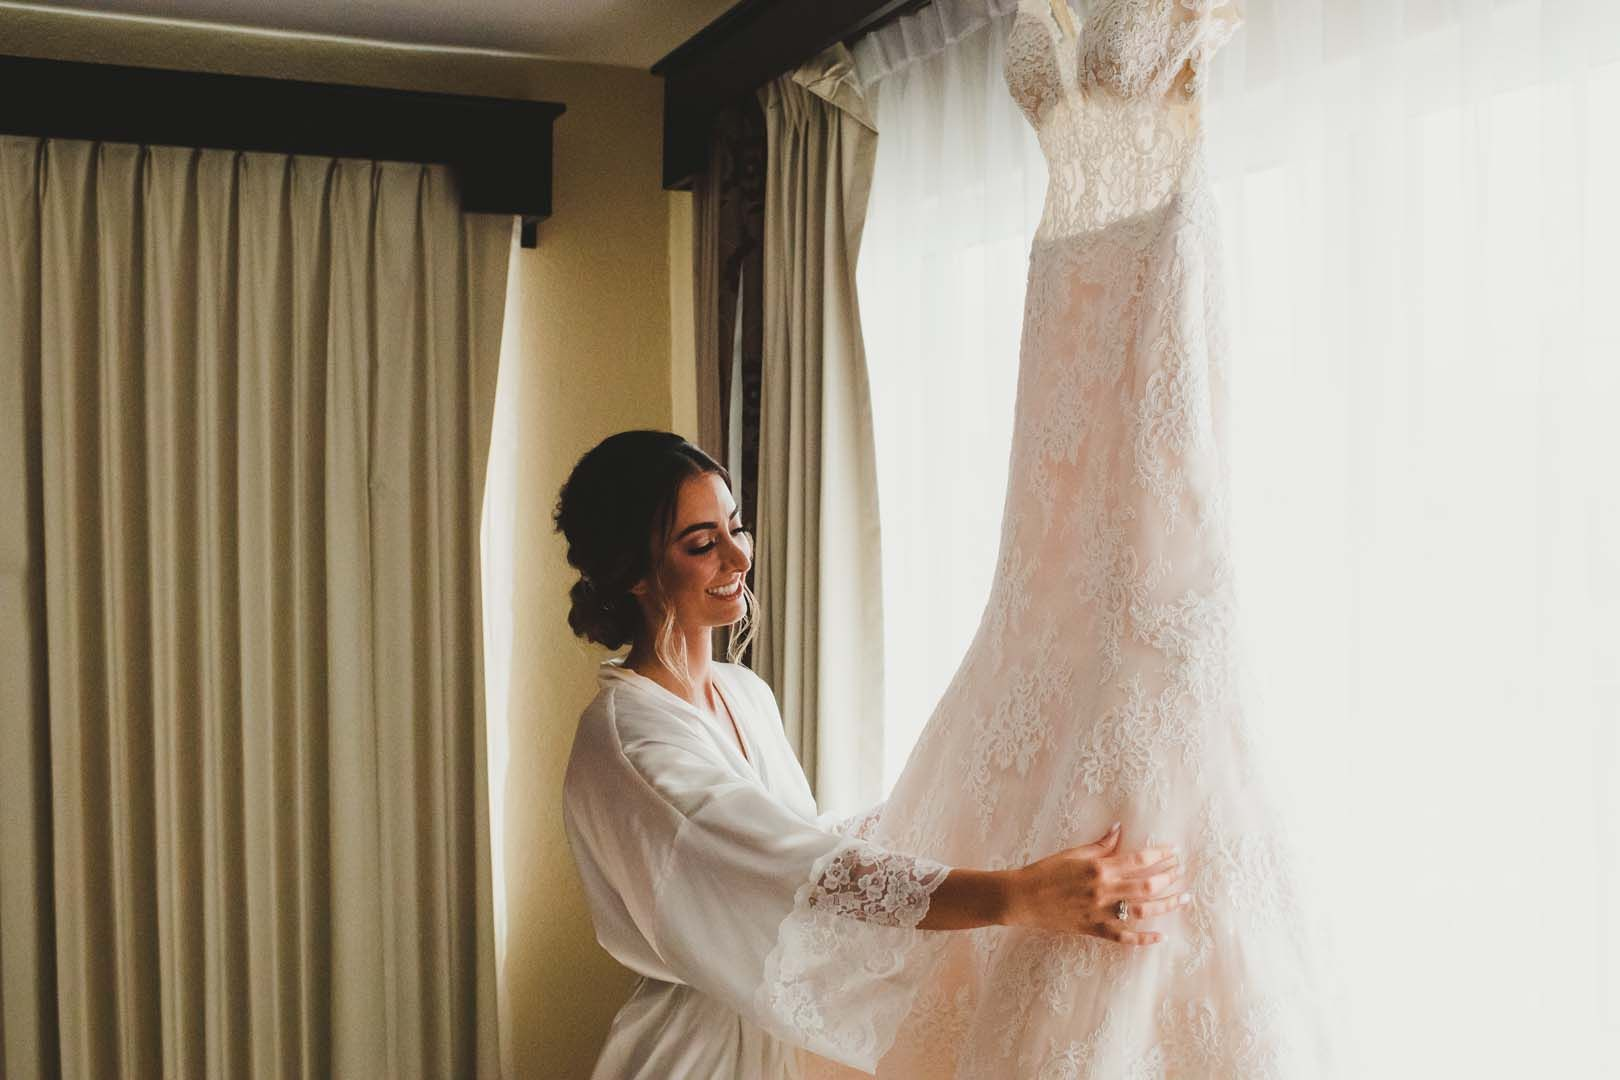 Bride holding her Wedding dress at the hotel. She stayed at Villa del Palmar in Los Cabos, Mexico.